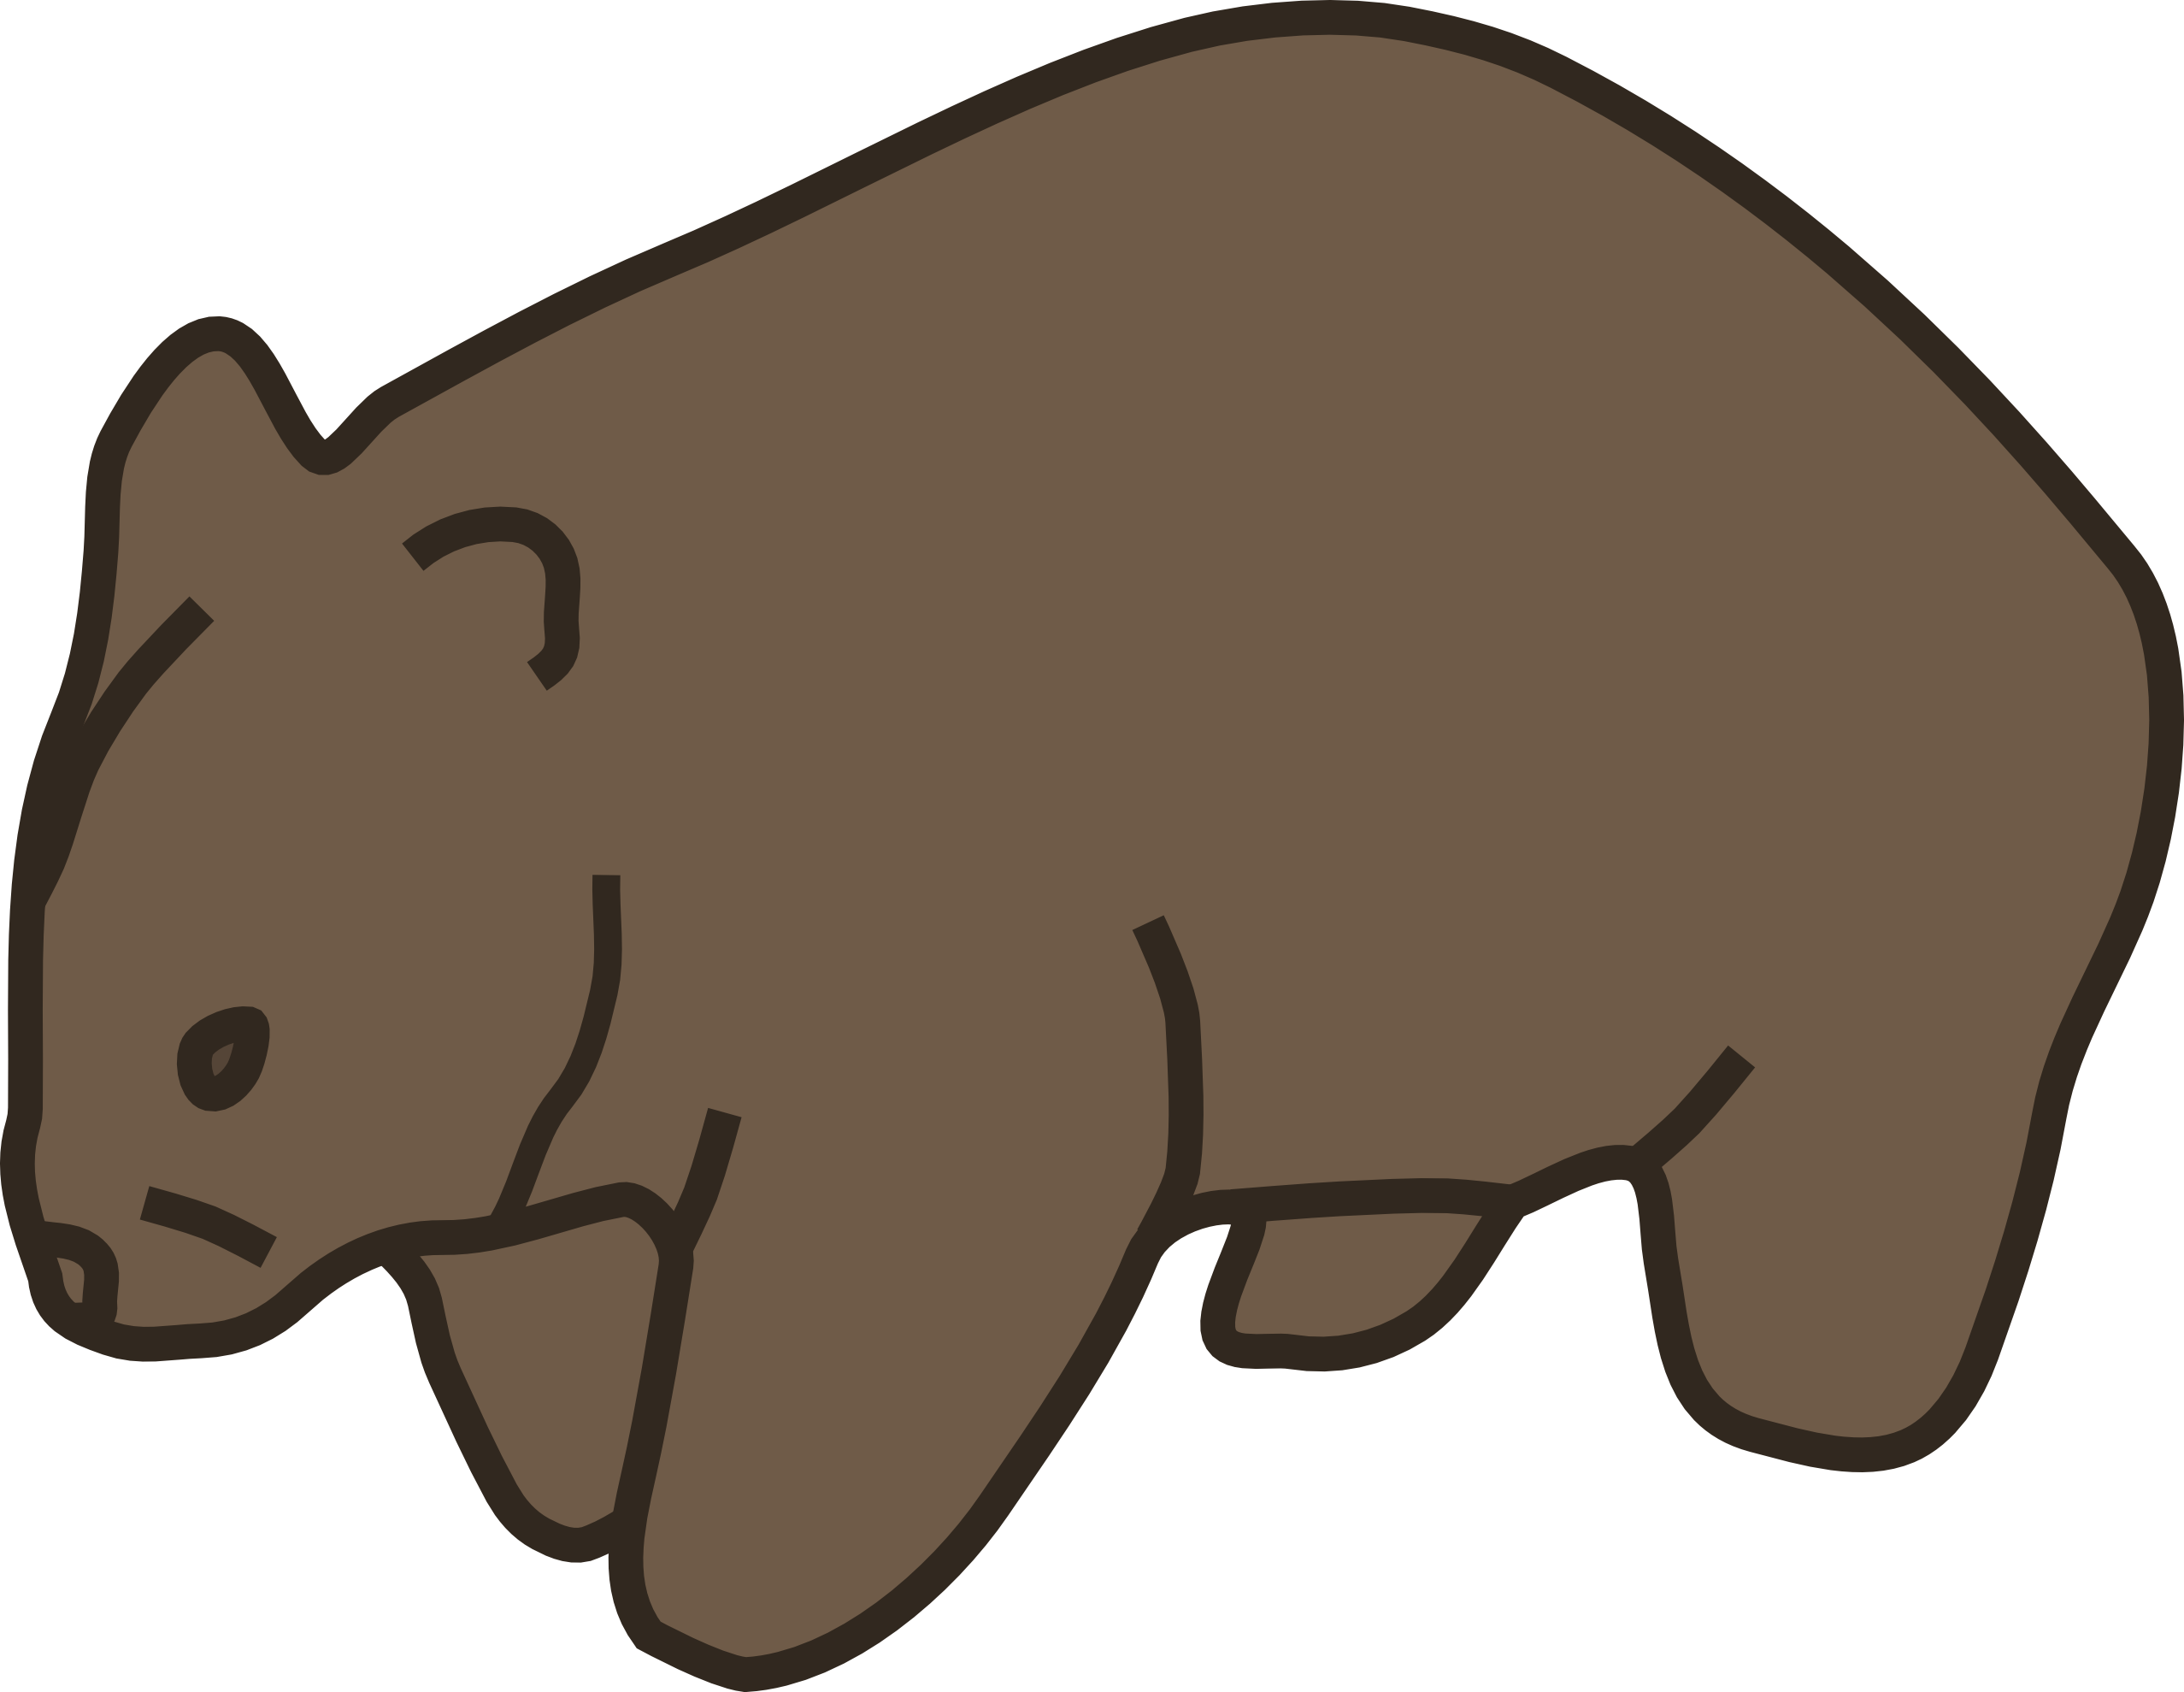 Wombat clipart #6, Download drawings